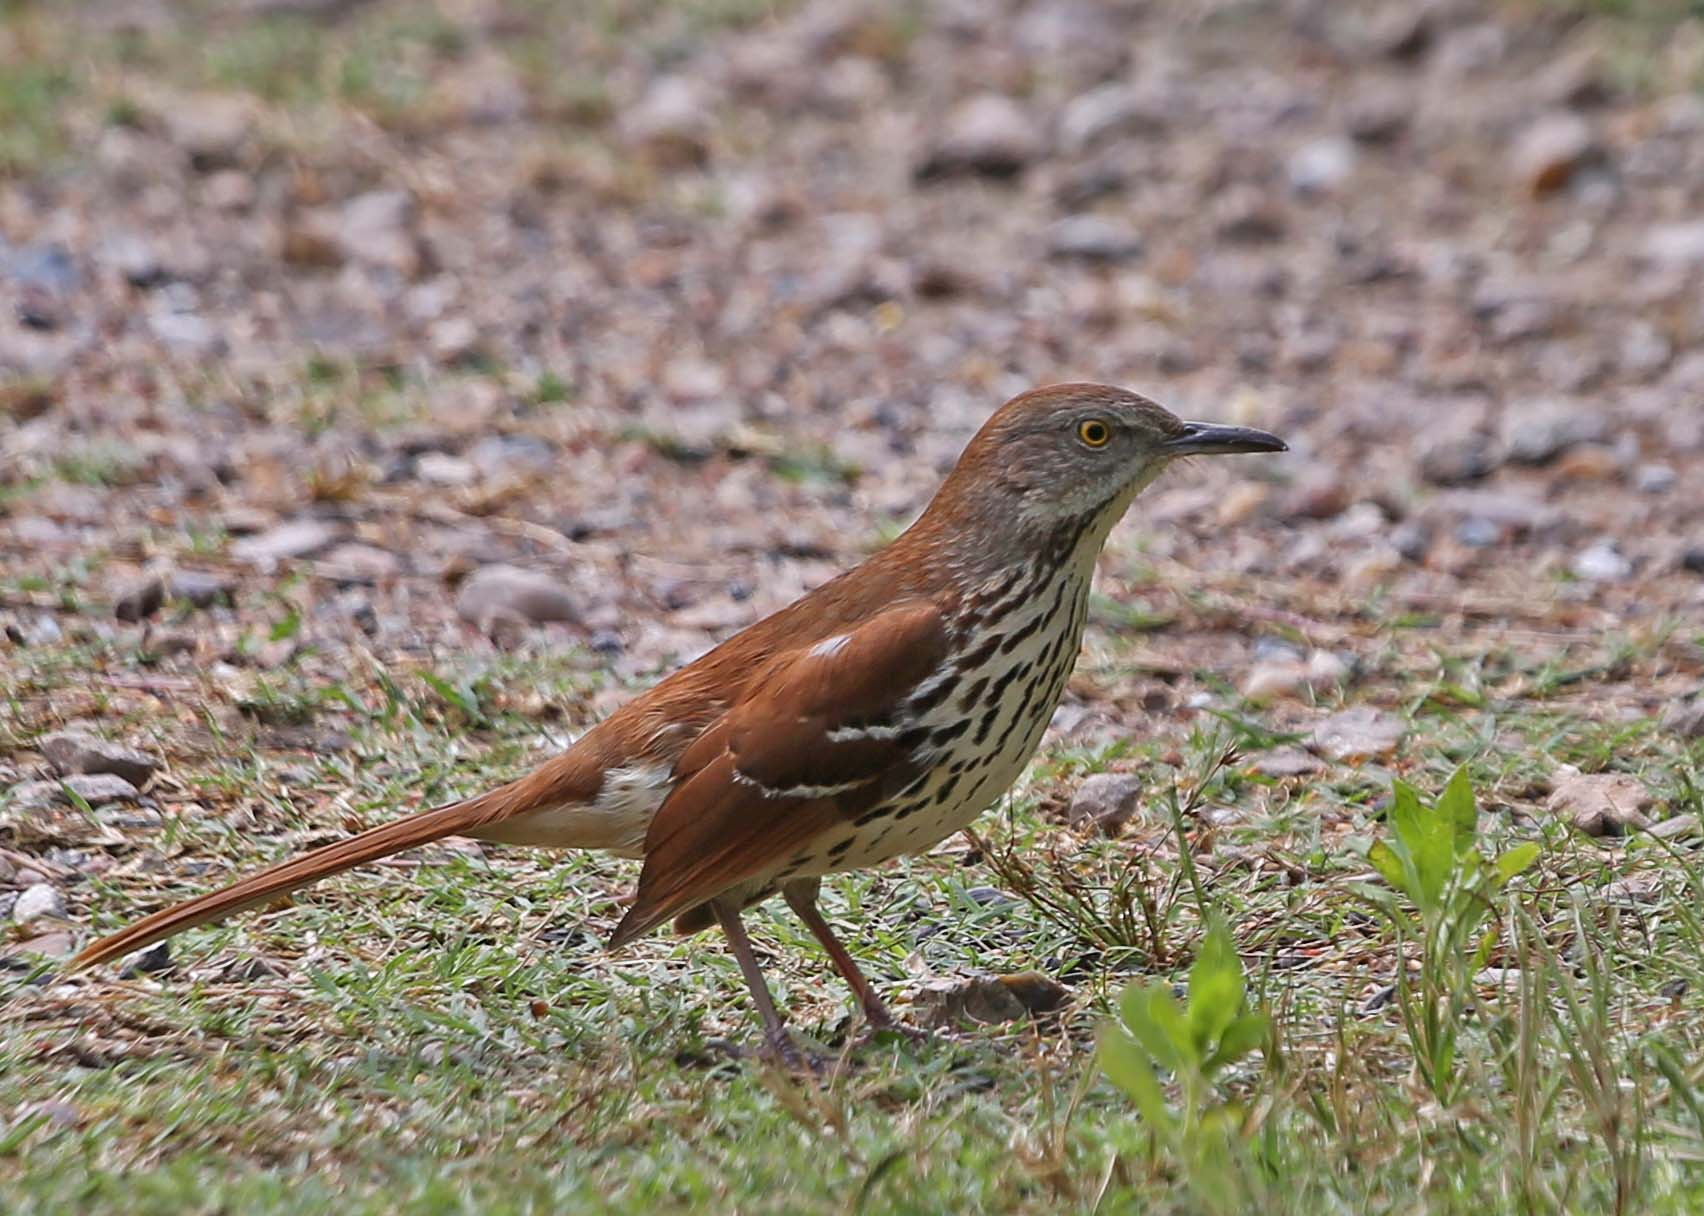 Pictures and information on Brown Thrasher